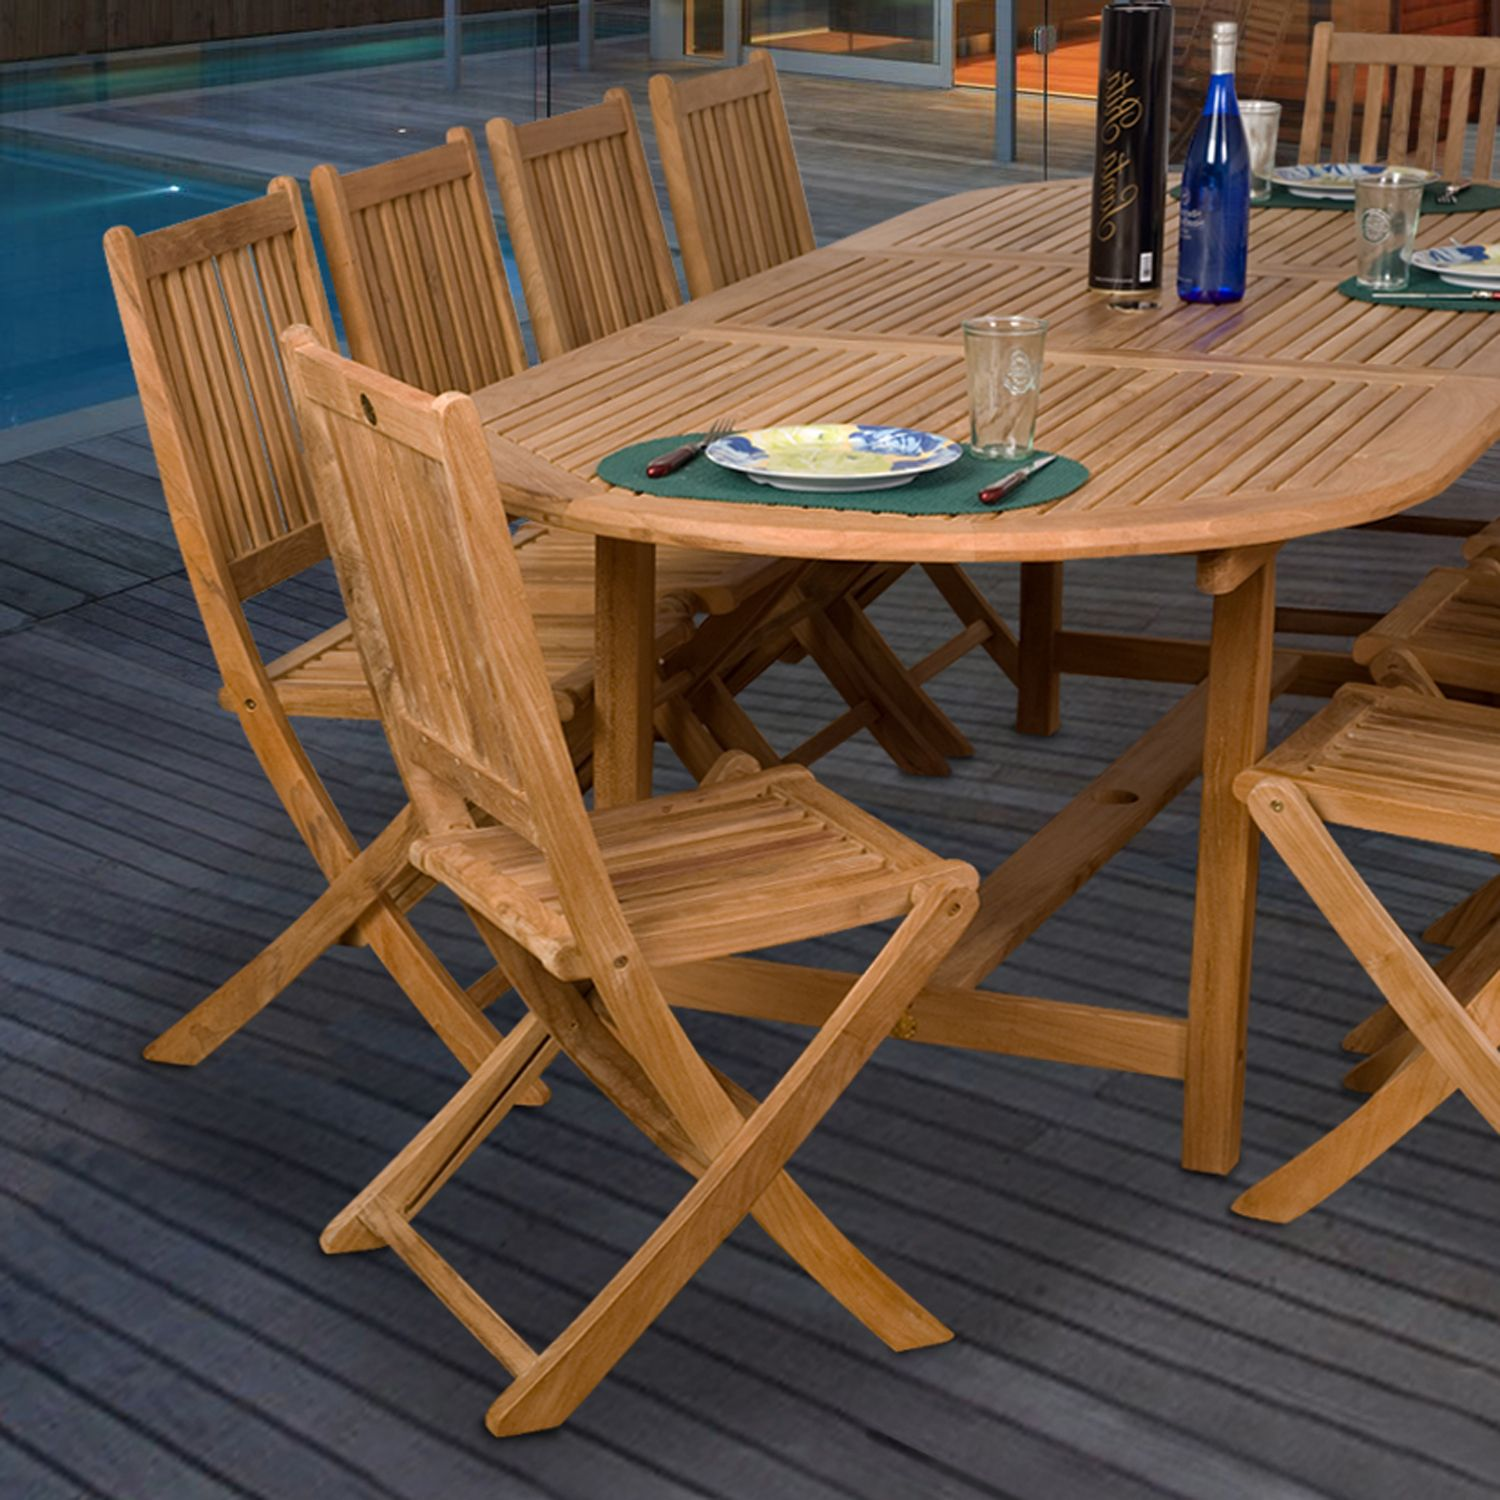 Patio Folding Chairs Chairs Furniture